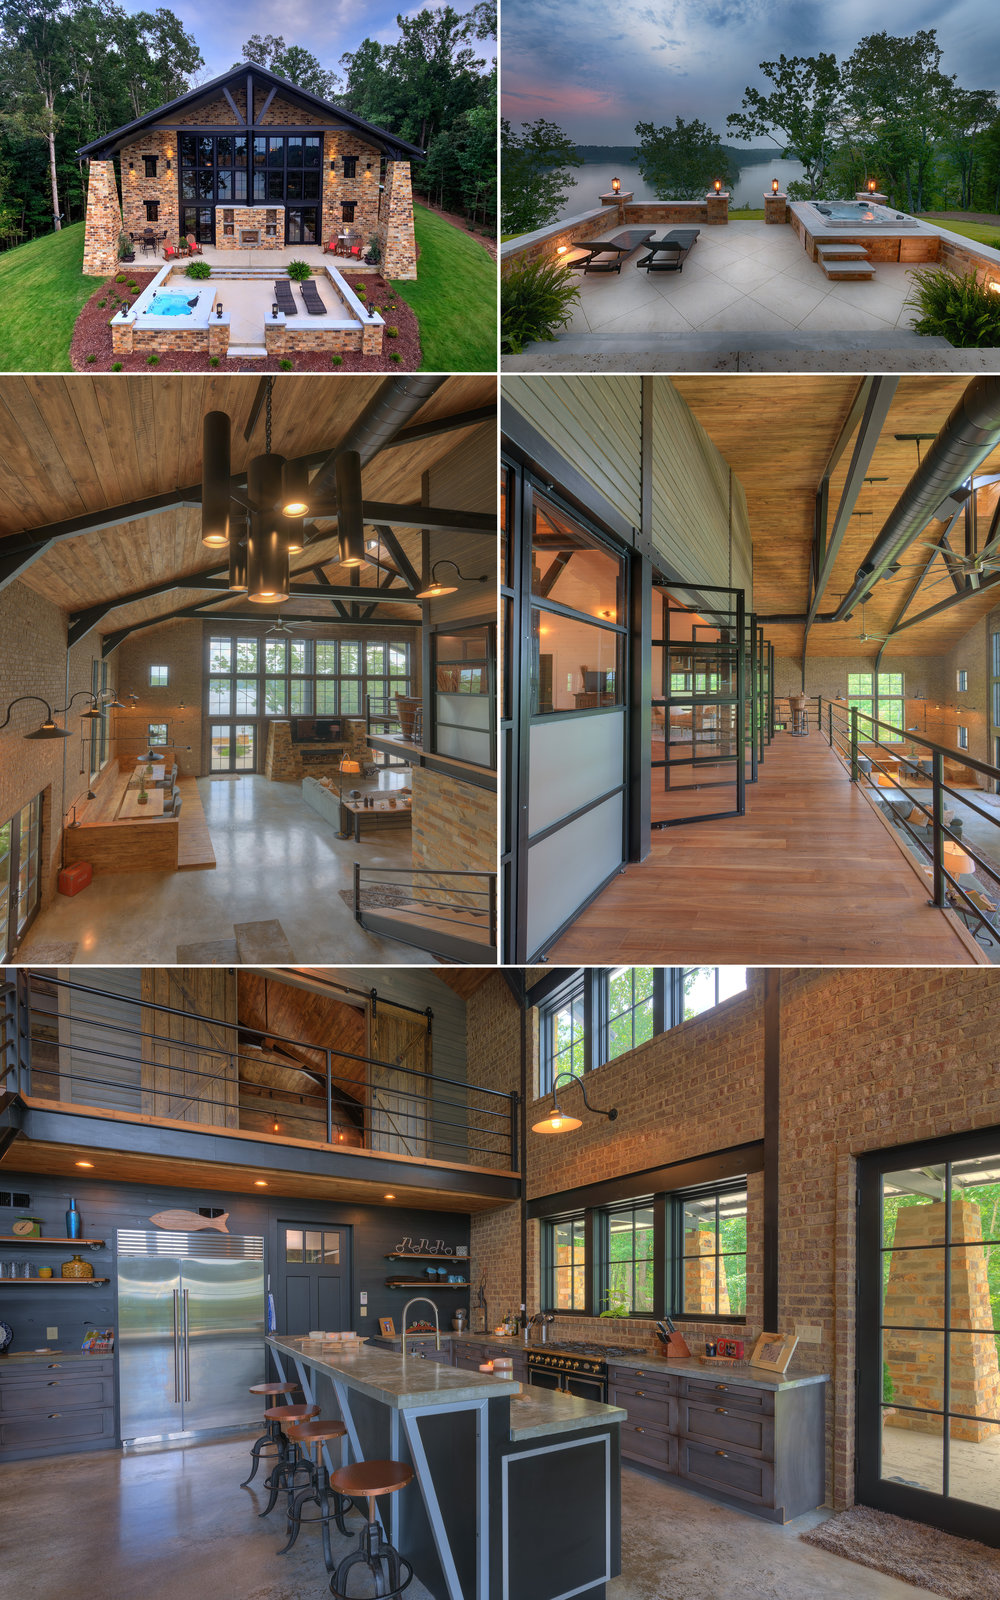 Crider collage exterior and interior design architecture Alabama